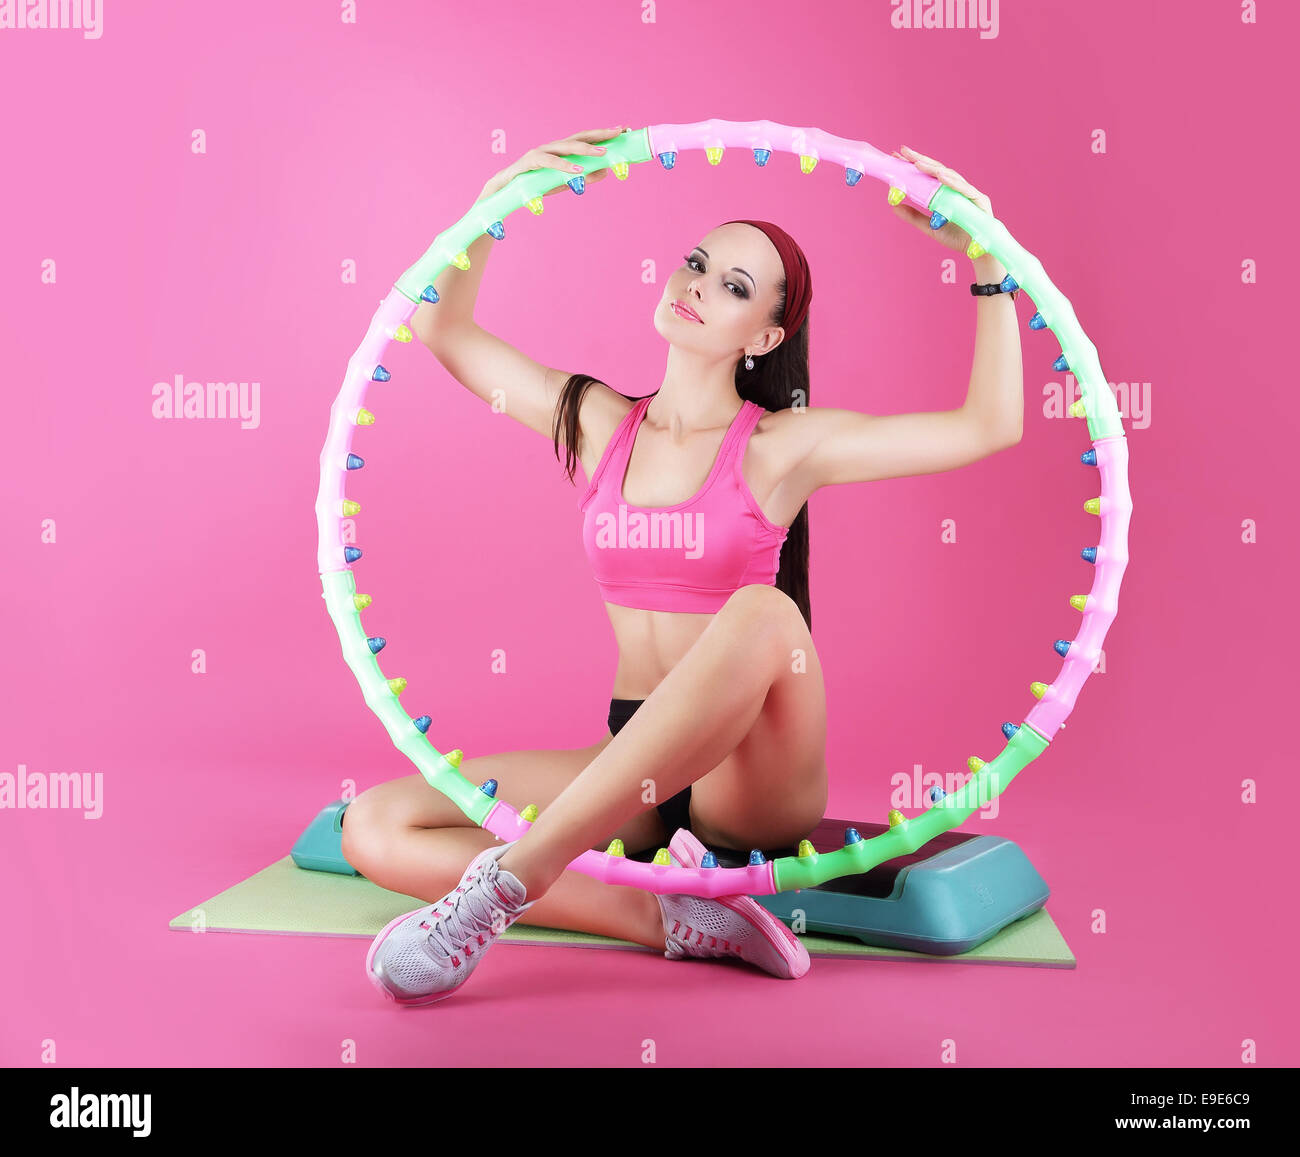 Wellness. Sport Club. Woman Sitting with Sport Equipment - Stock Image